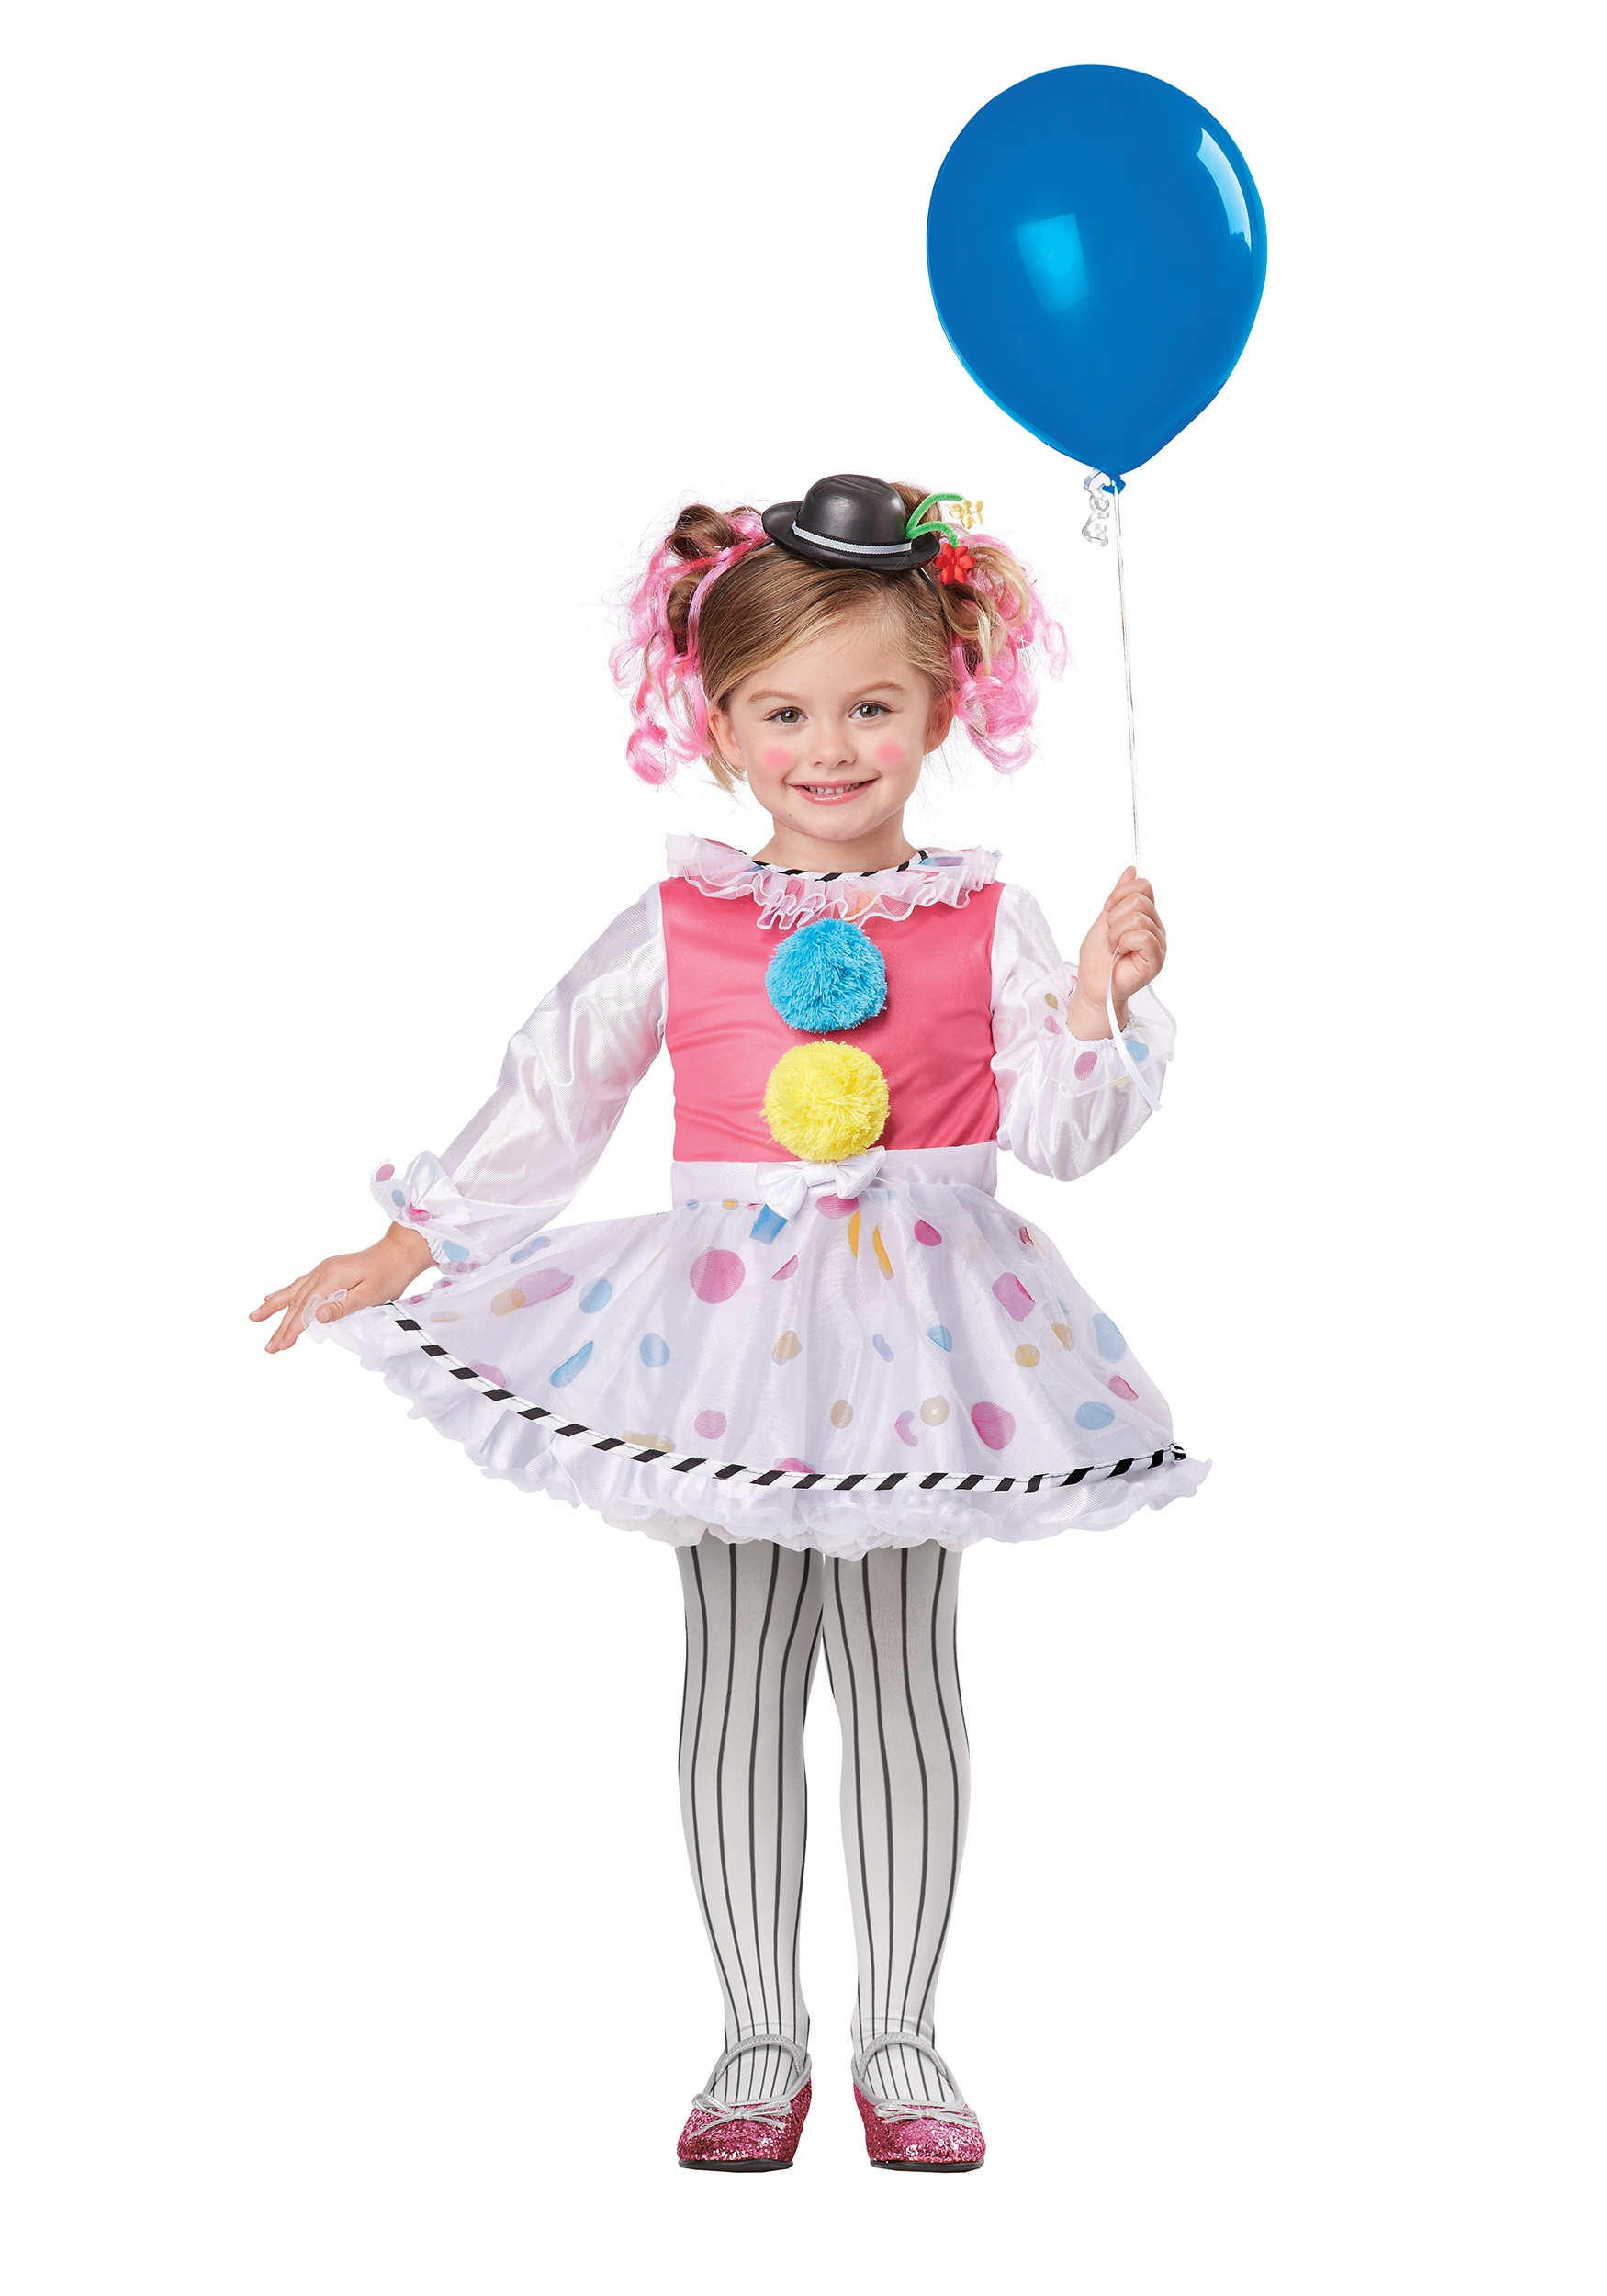 Toddler Cutsie Clown Costume  sc 1 st  Halloween Costumes & Toddler Cutsie Clown Costume - Halloween Costumes